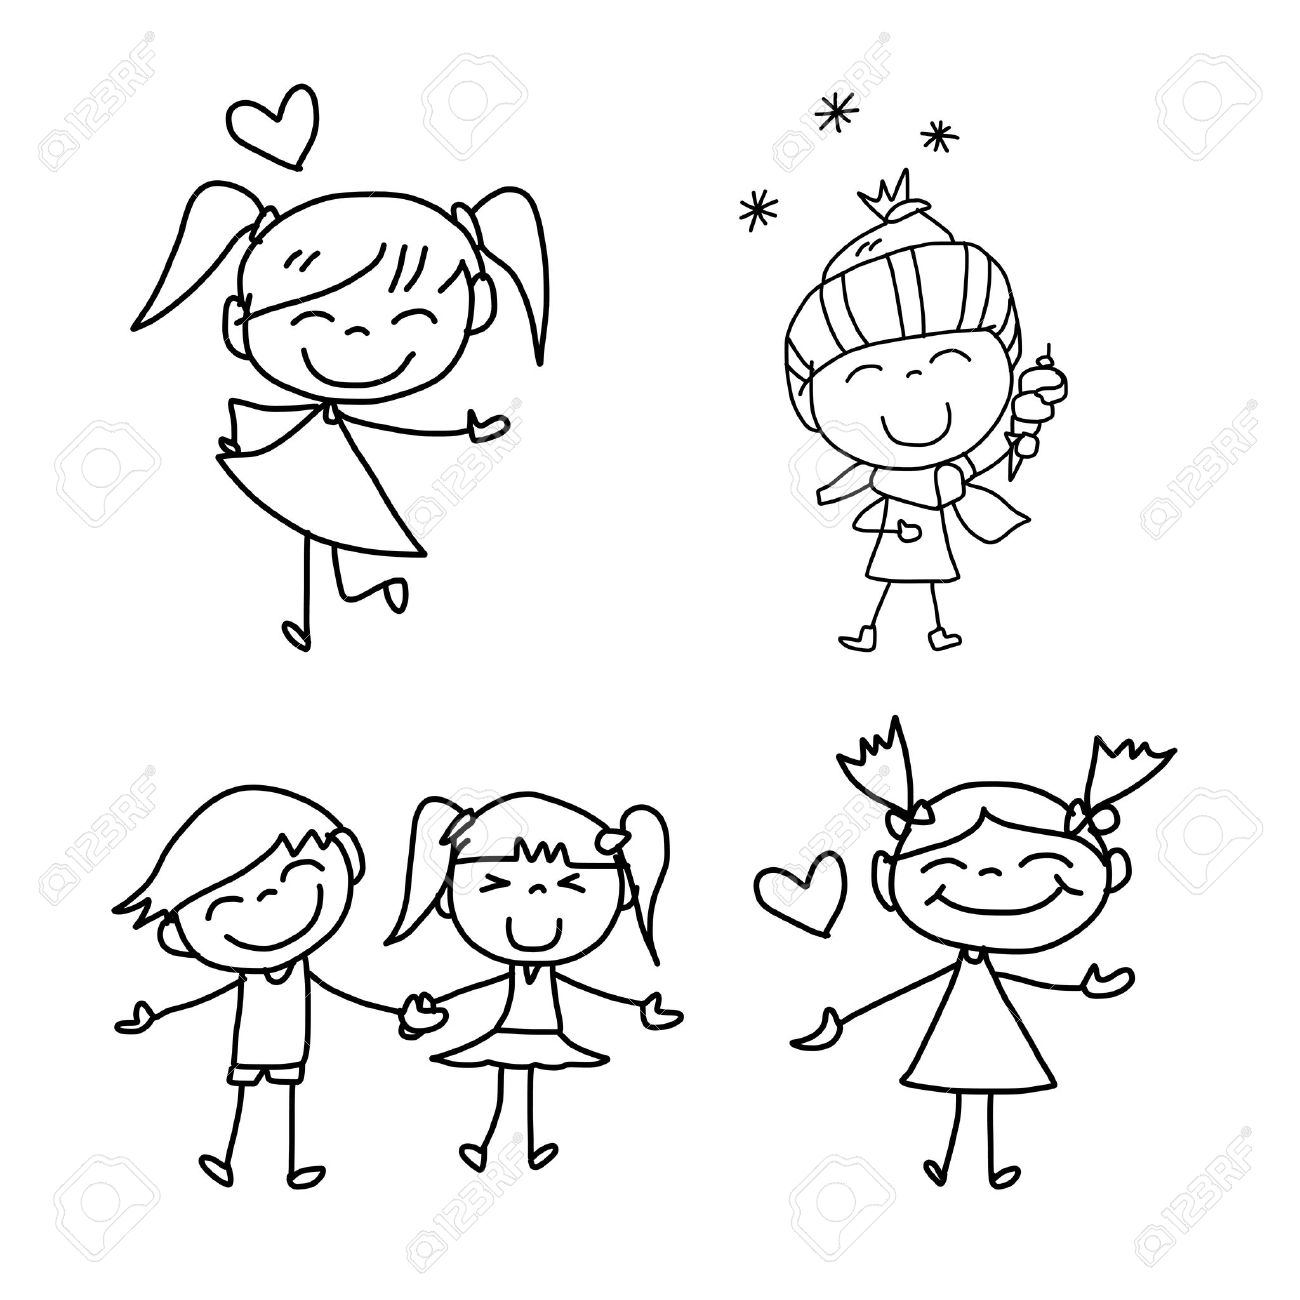 vector hand drawing cartoon happy kids playing - Cartoon Drawings Of Kids